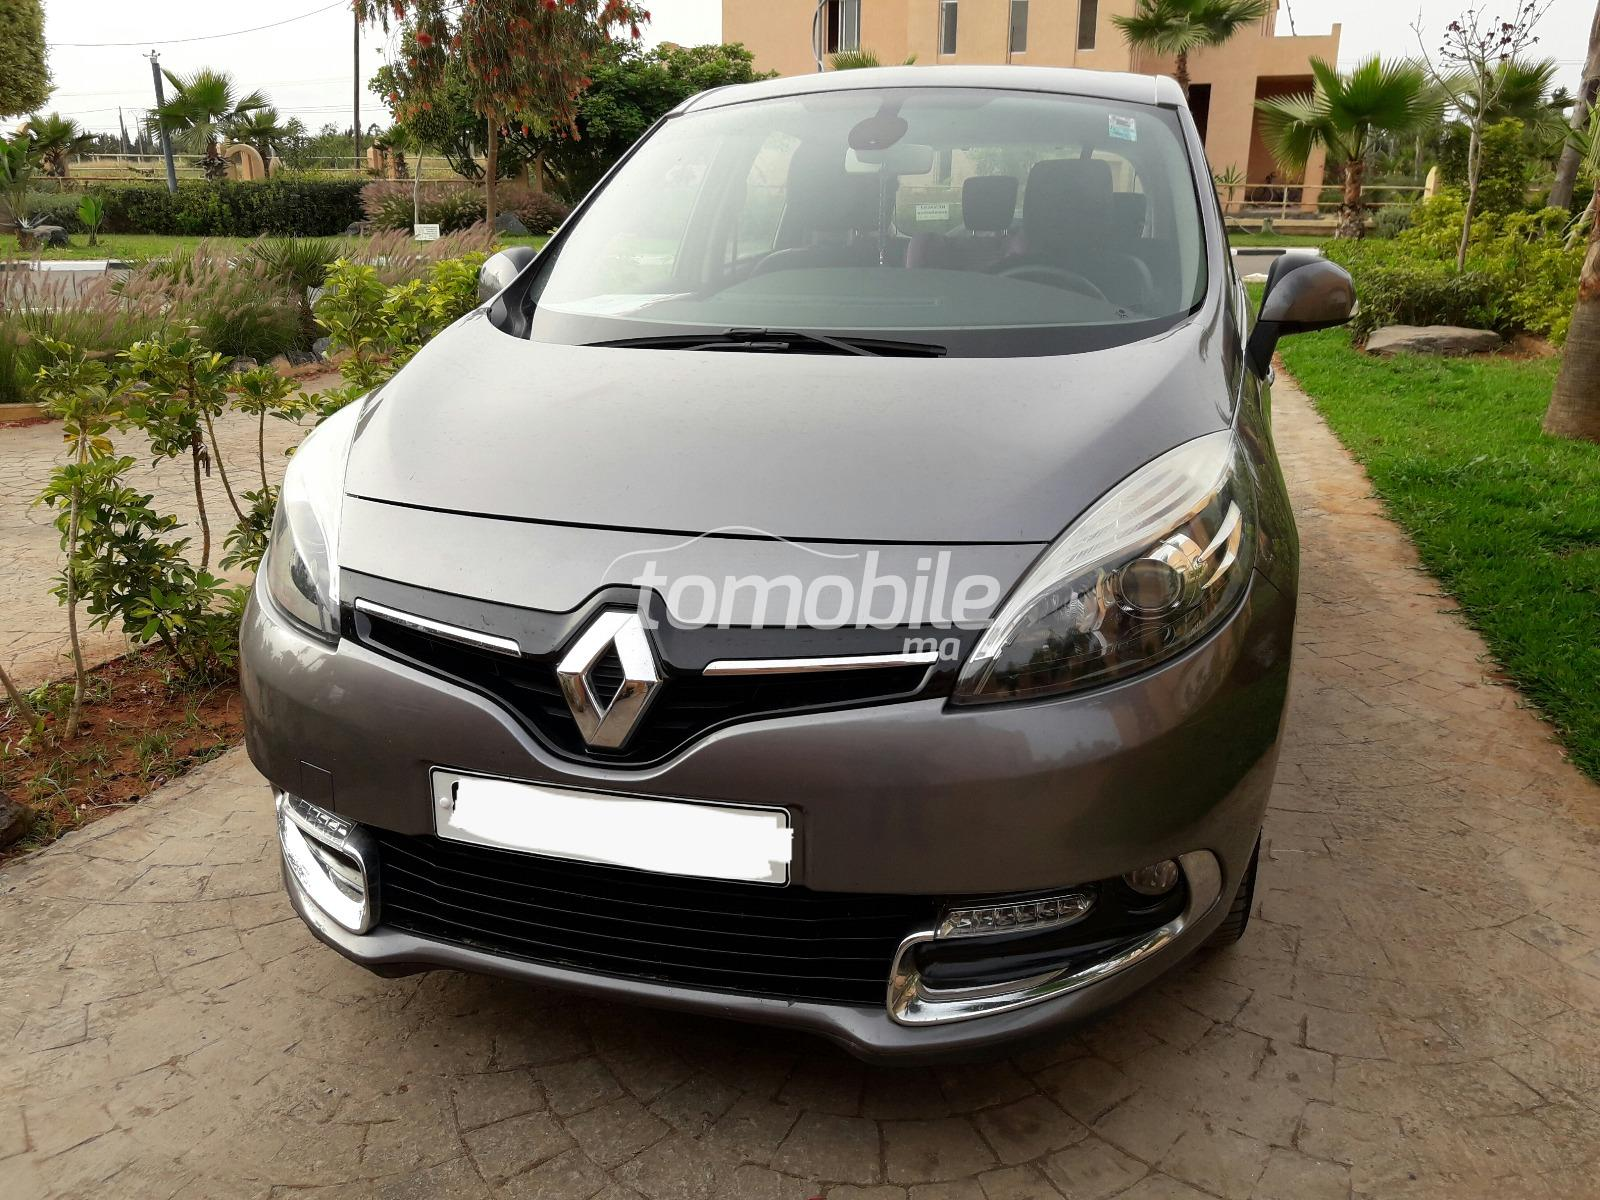 renault scenic diesel 2013 occasion 50000km casablanca. Black Bedroom Furniture Sets. Home Design Ideas